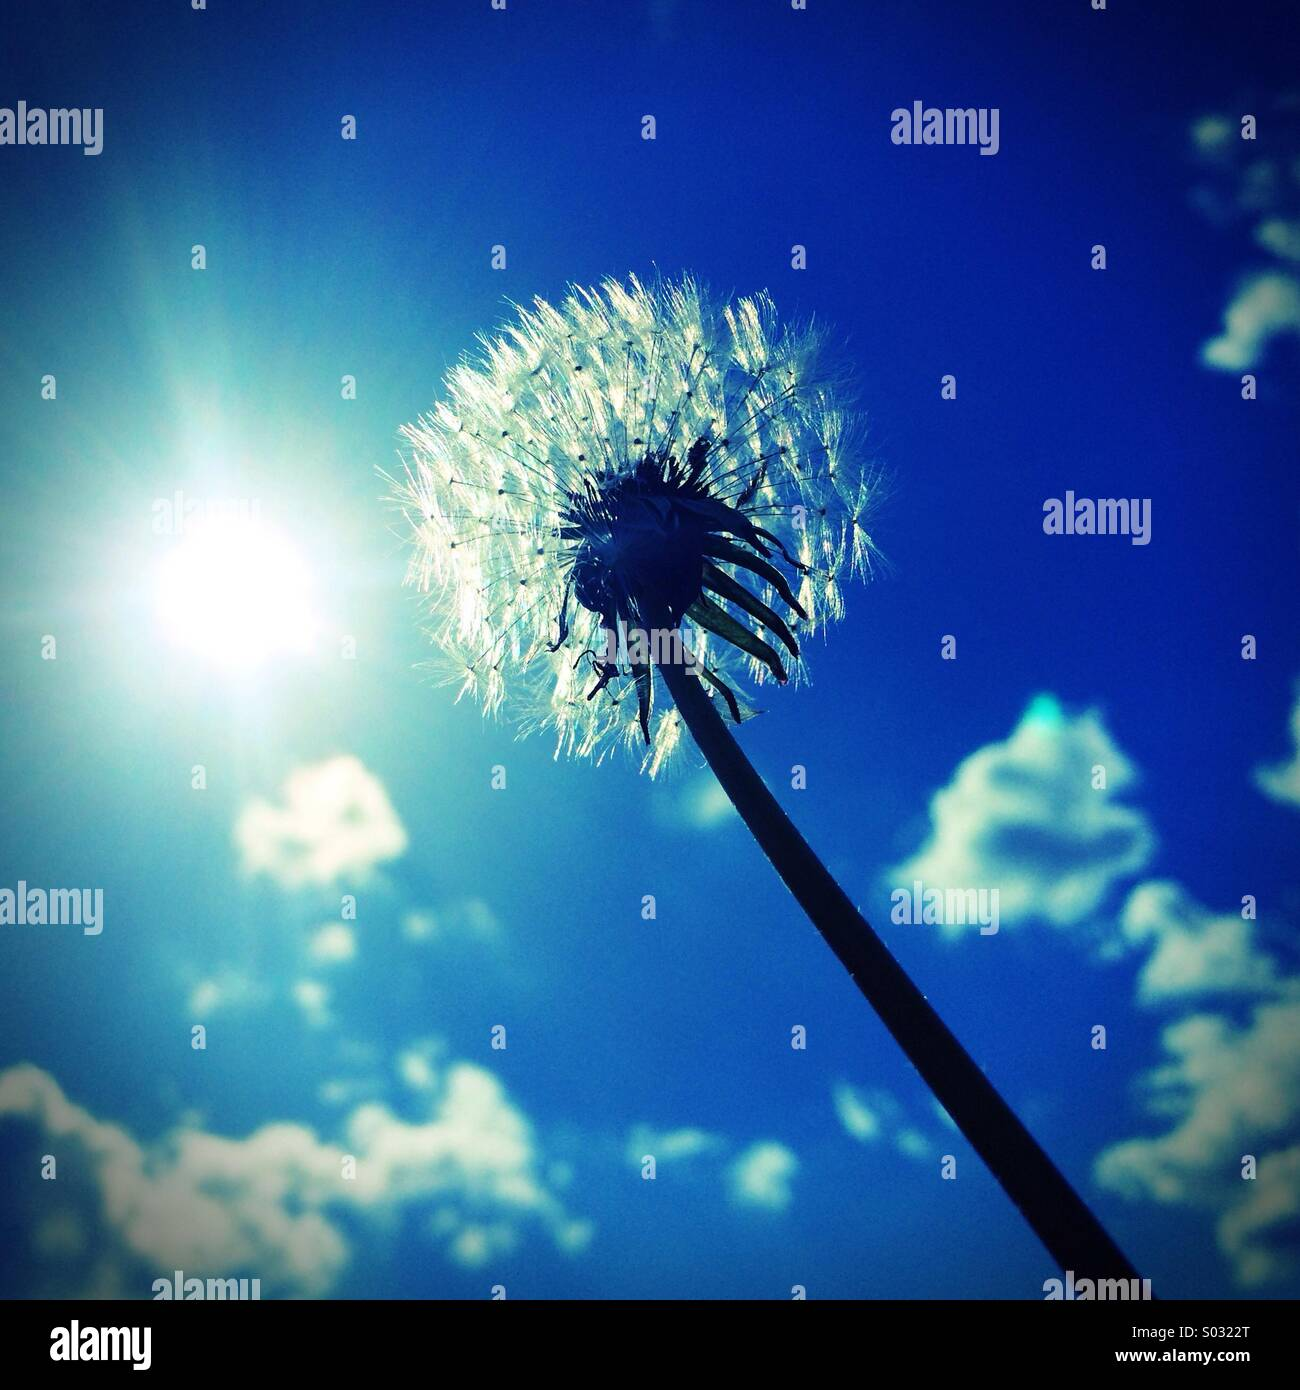 Dandelion seed head against the sun and blue sky, UK - Stock Image